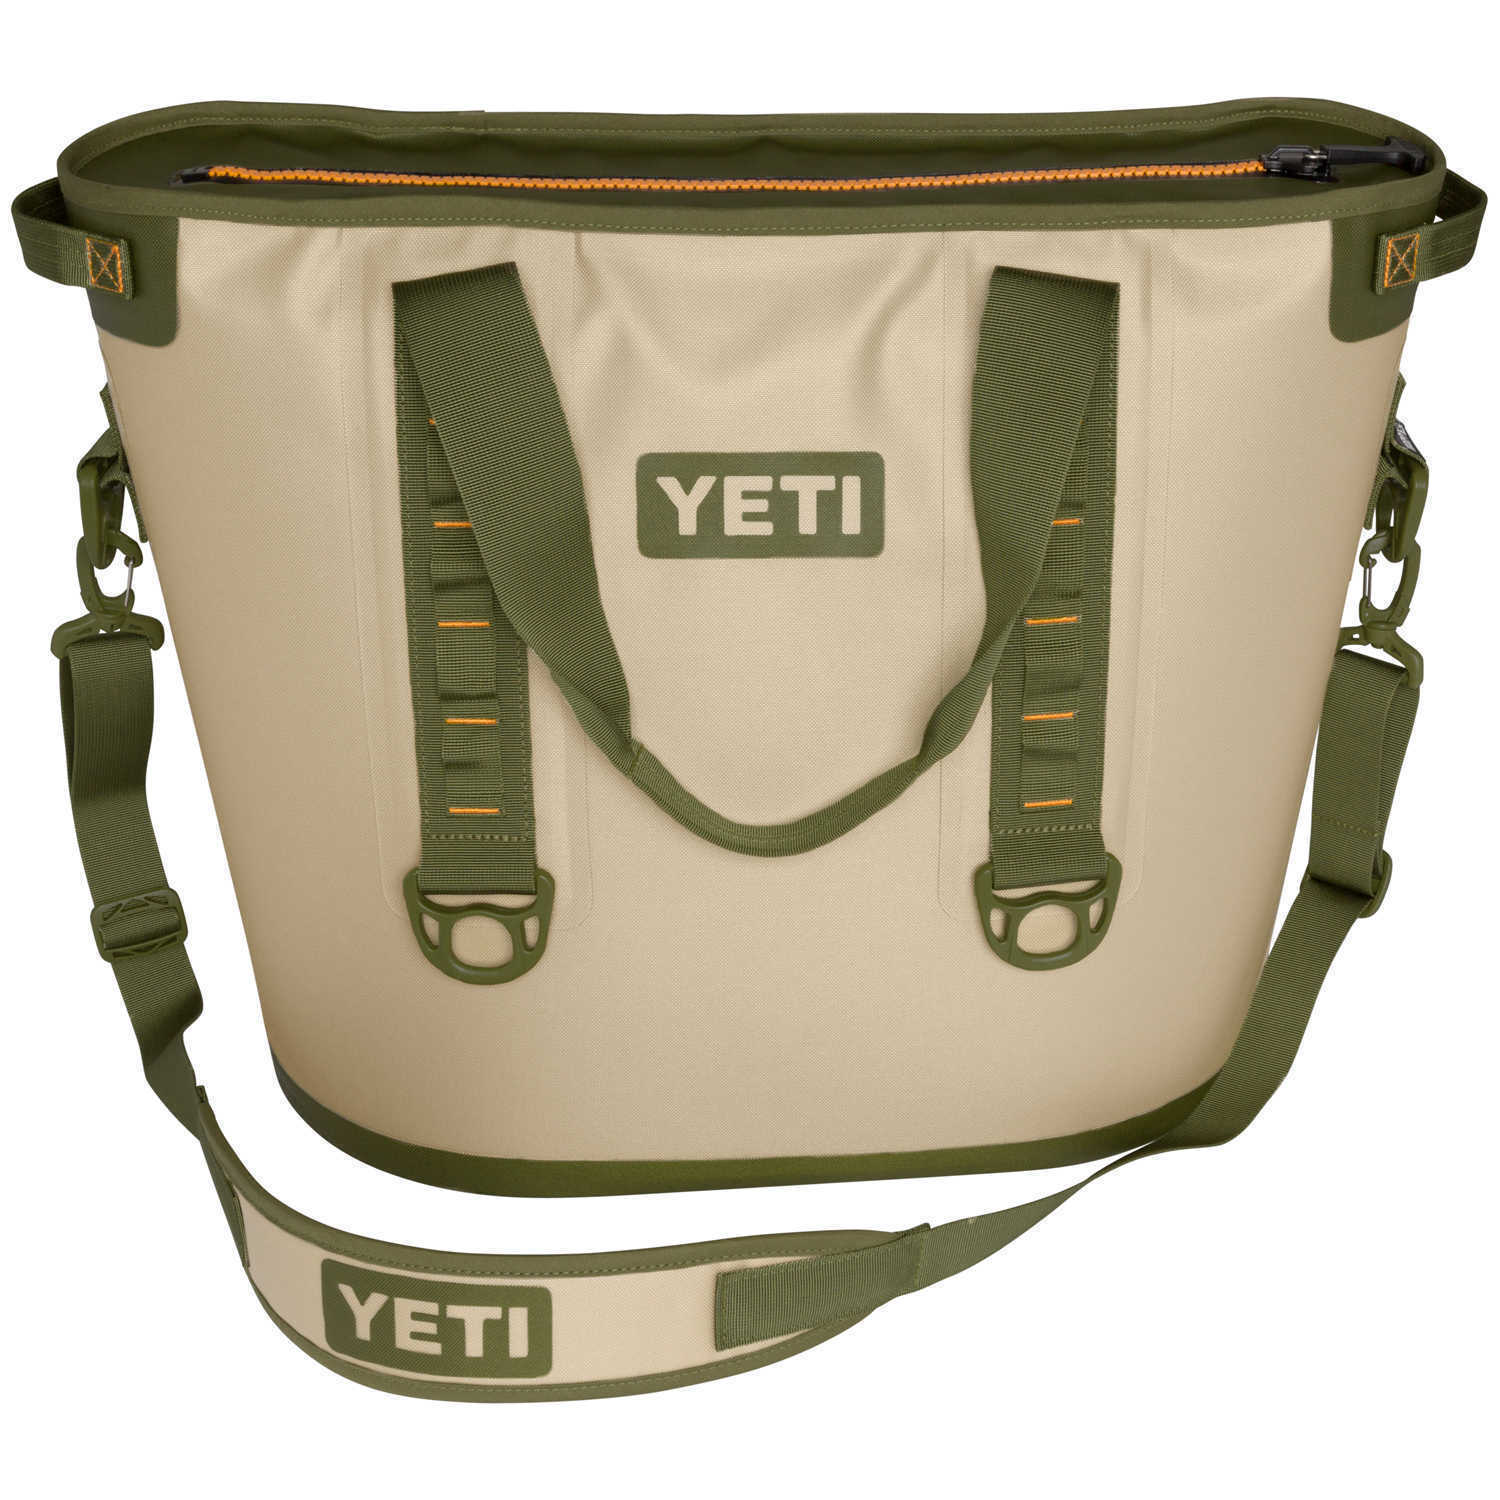 YETI Hopper Two 30 Portable Cooler Field Tan Blaze orange